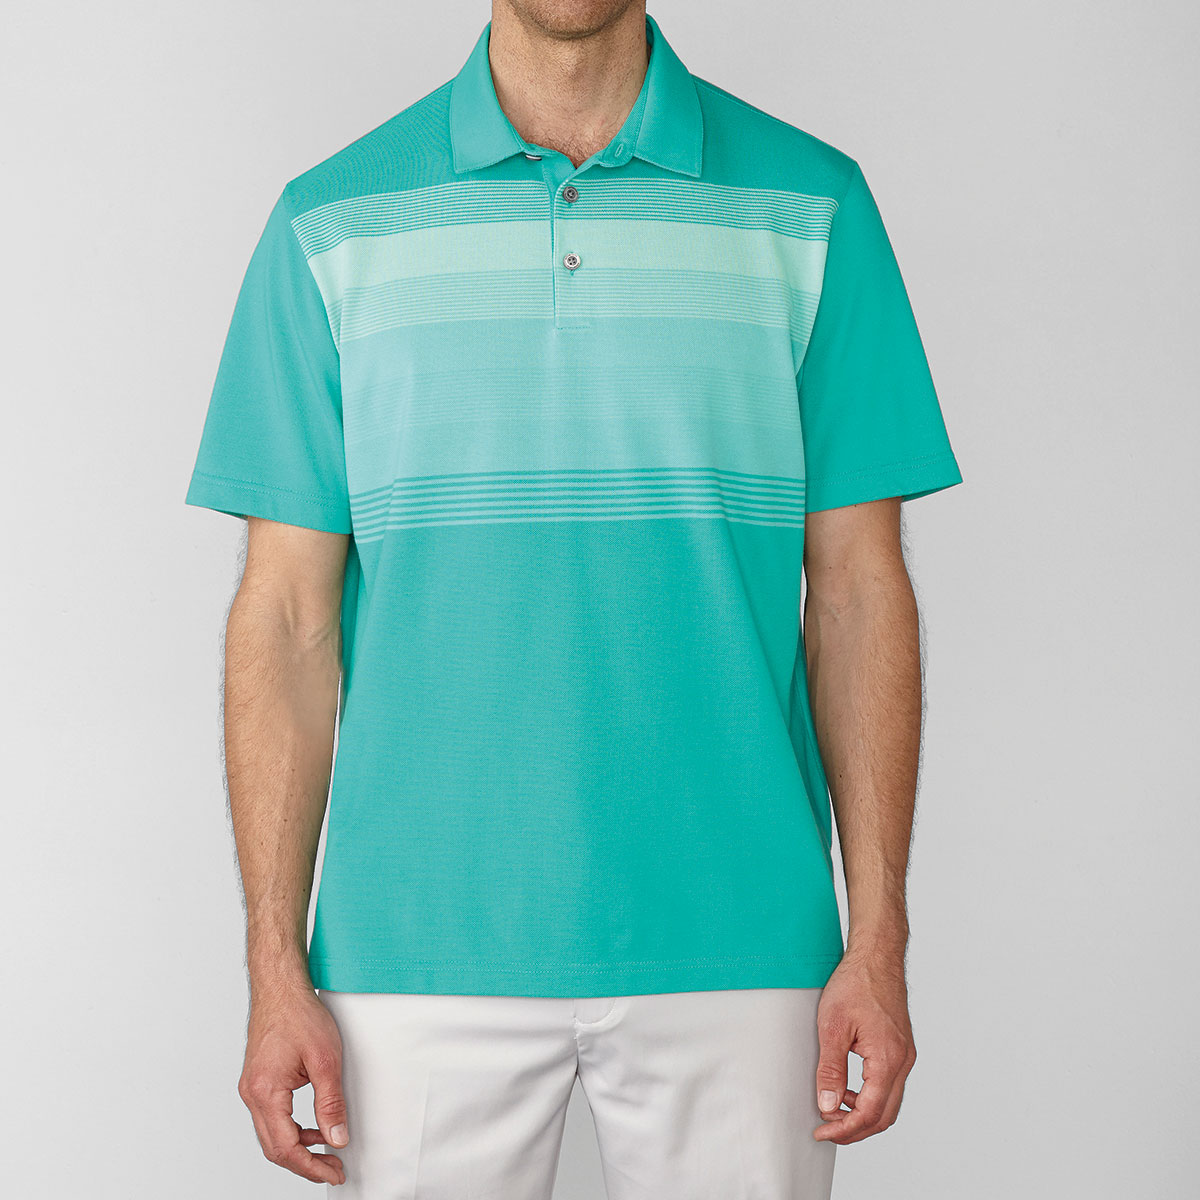 Ashworth Mens Performance Interlock Multi-Stripe Galapagos Polo